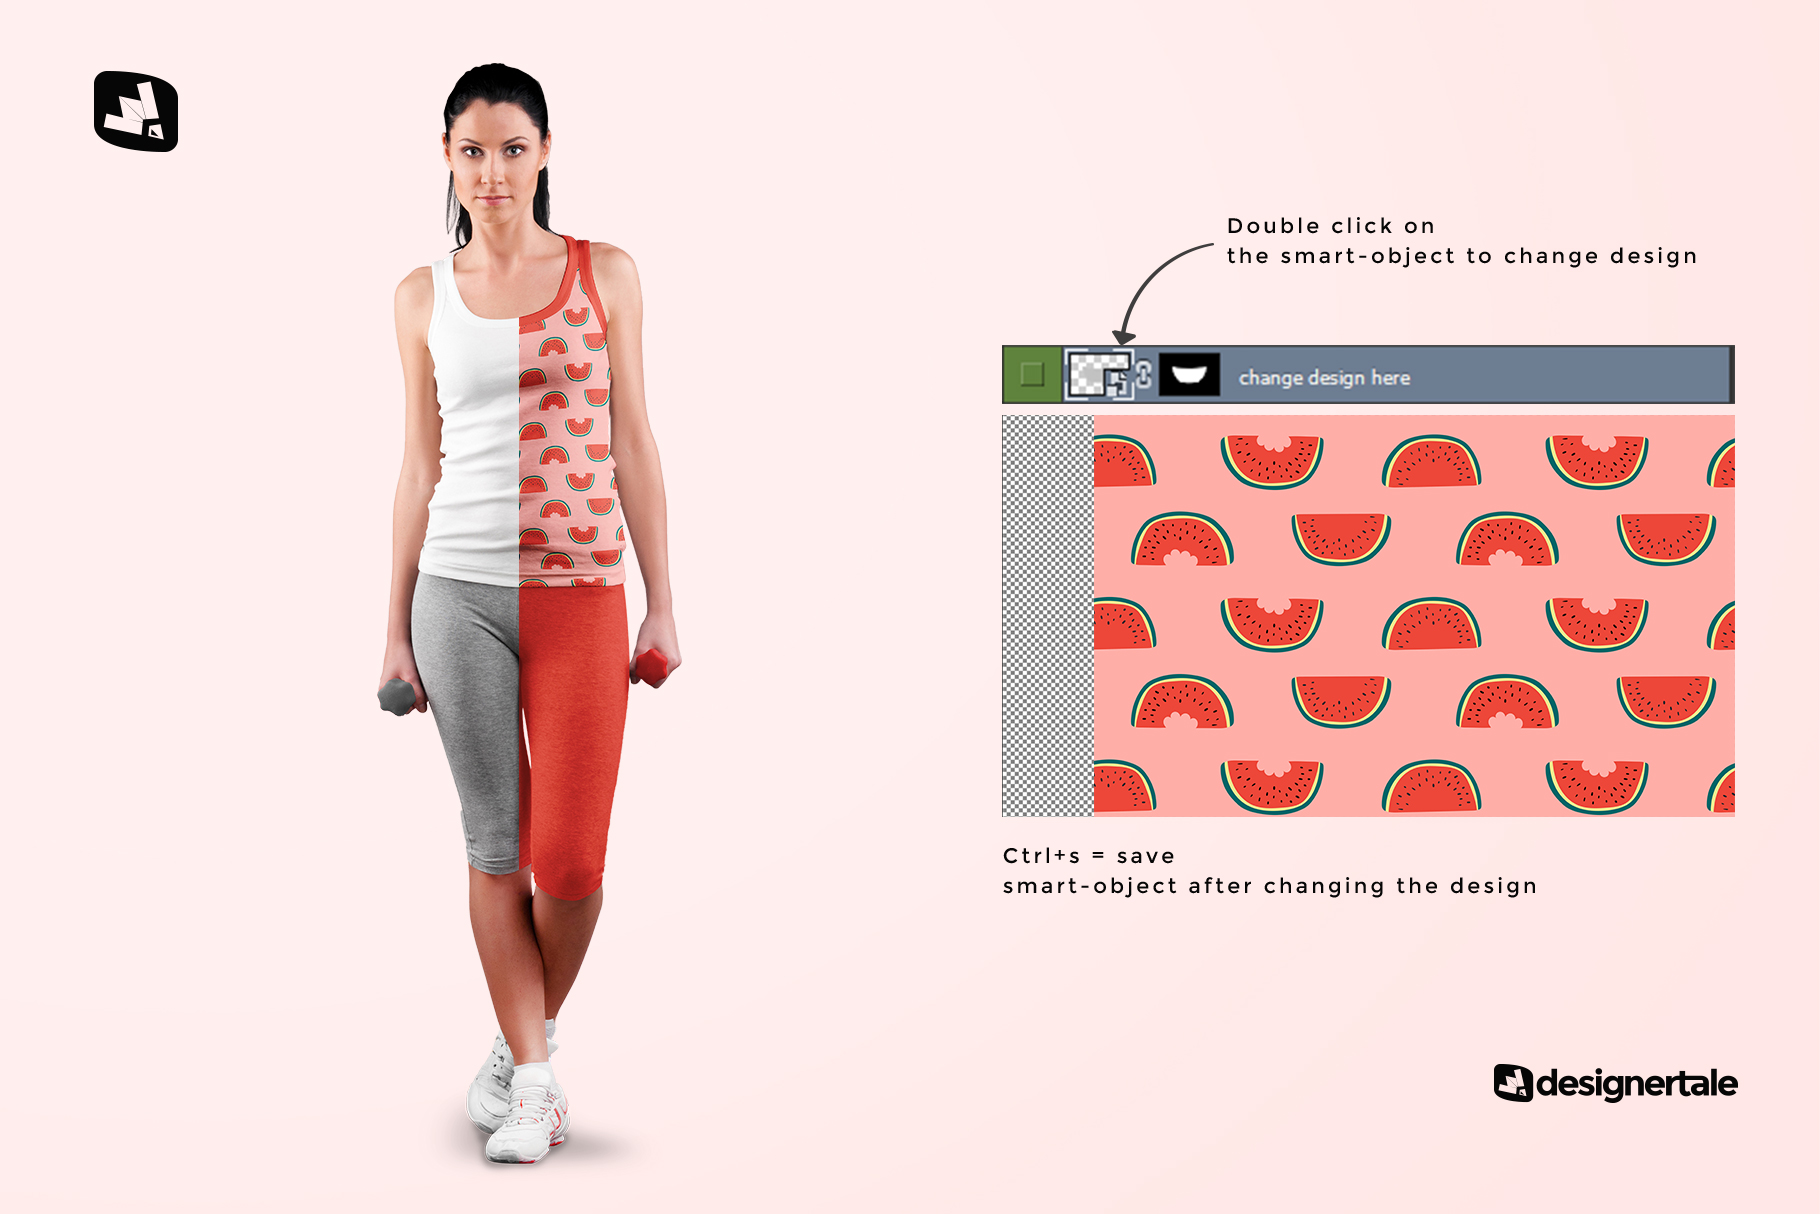 how to change design of the female sleeveless gym outfit mockup